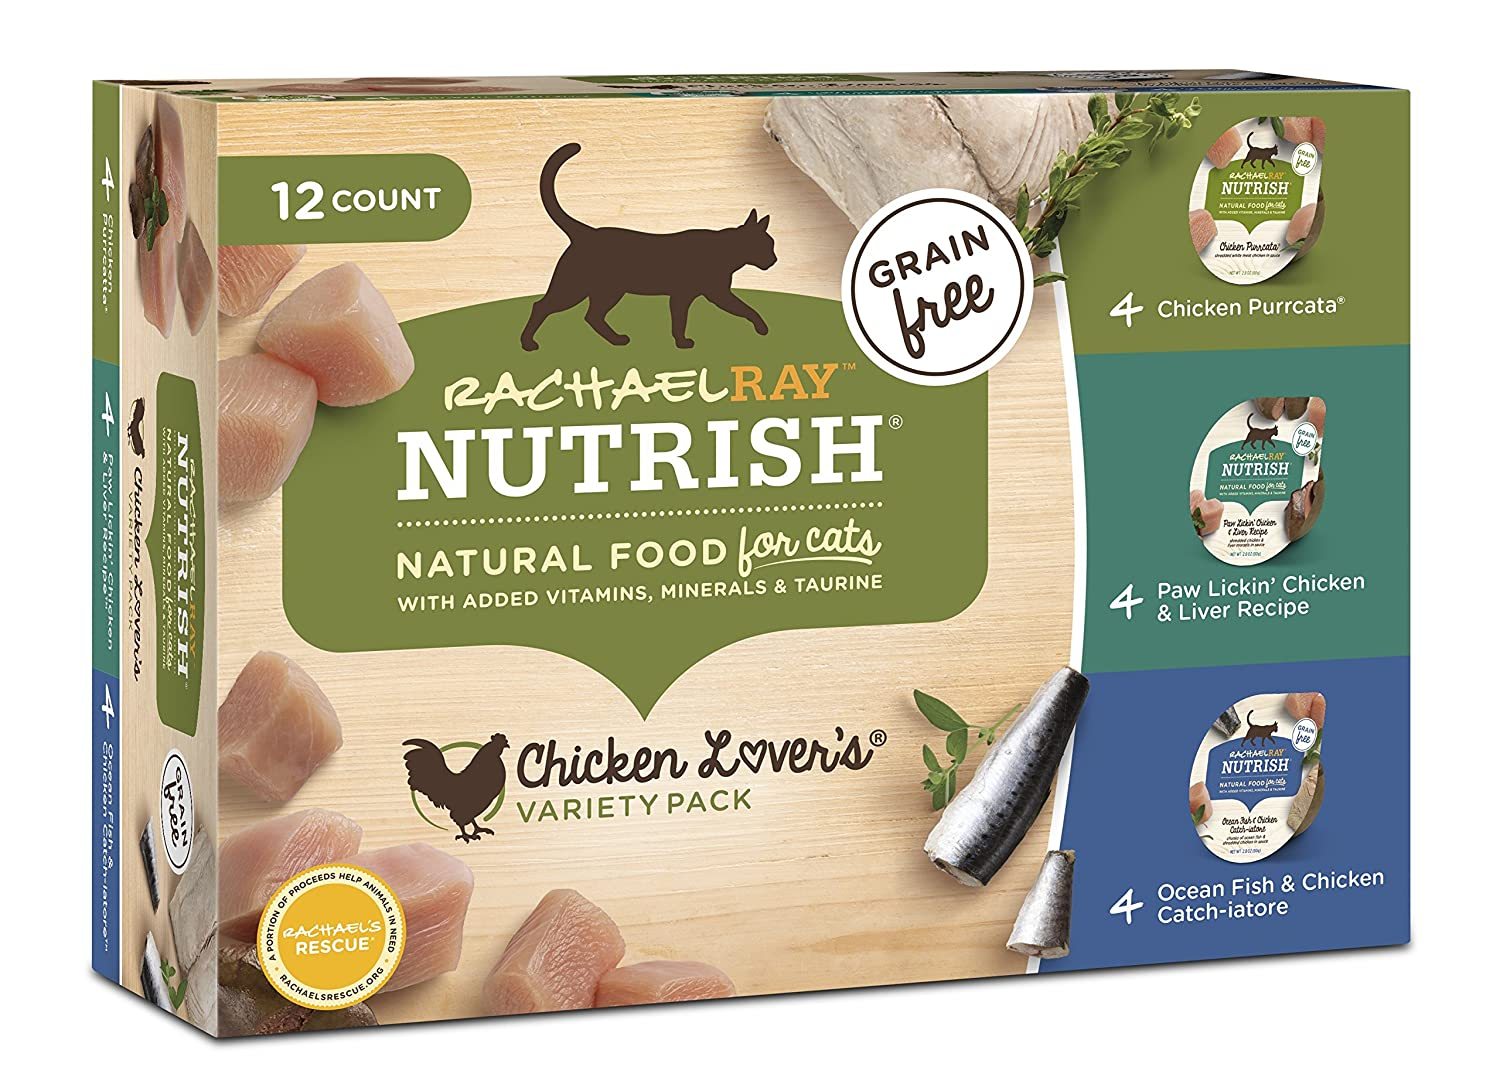 Rachael Ray Nutrish Natural Wet Cat Food, Chicken Lovers Variety Pack, 2.8 Ounce Cup (Pack of 12), Grain Free